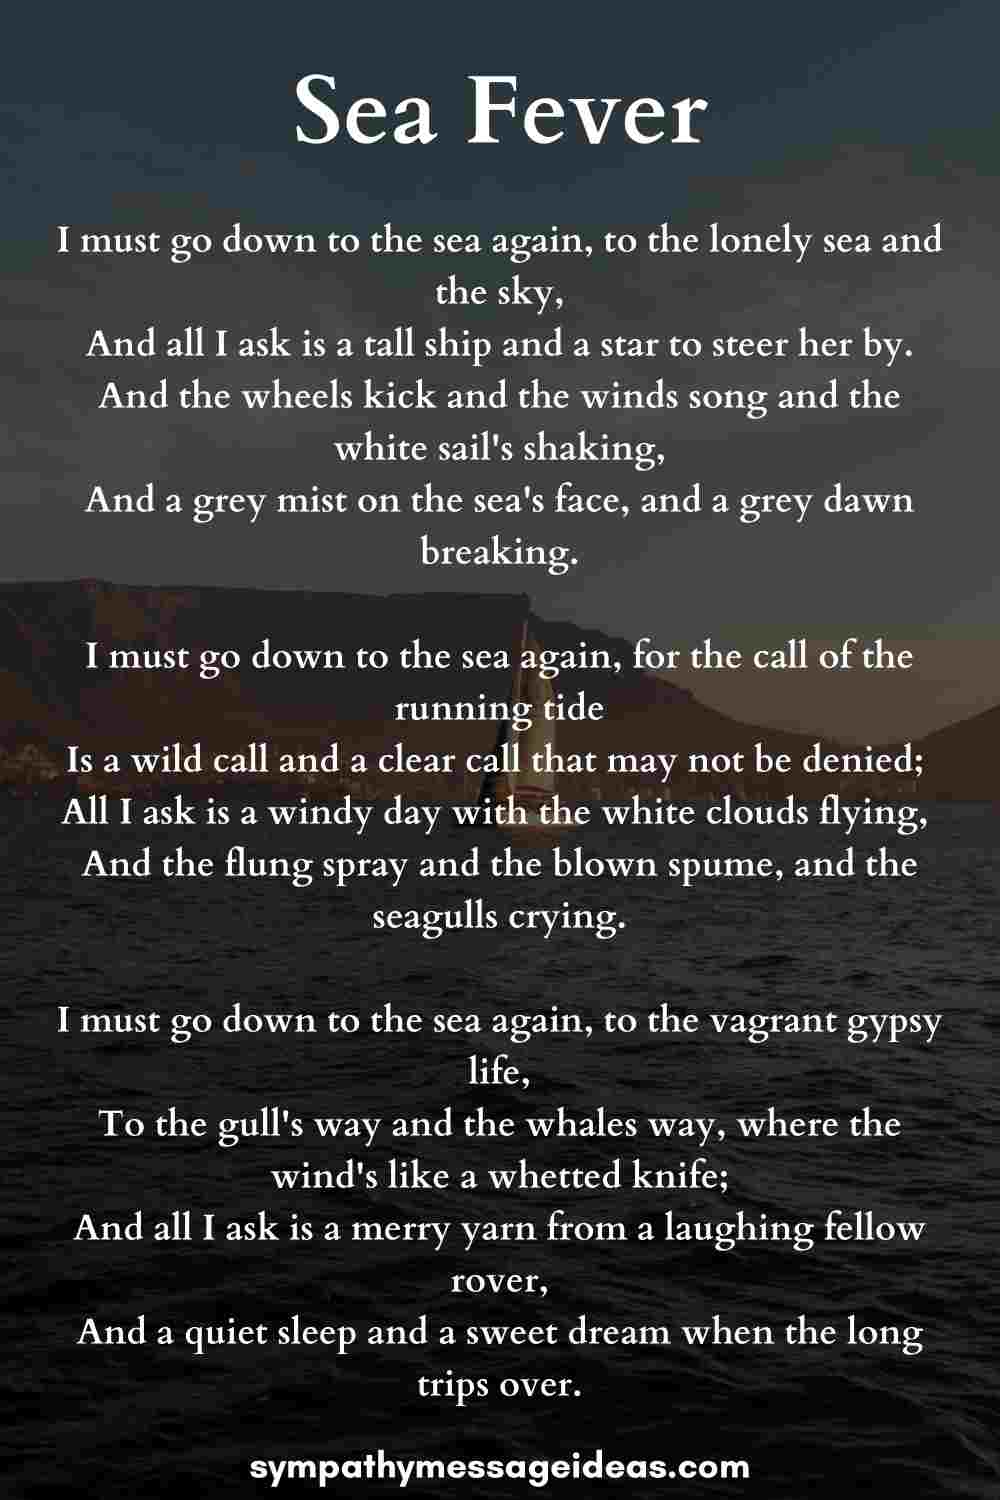 sea fever poem for sailors funeral